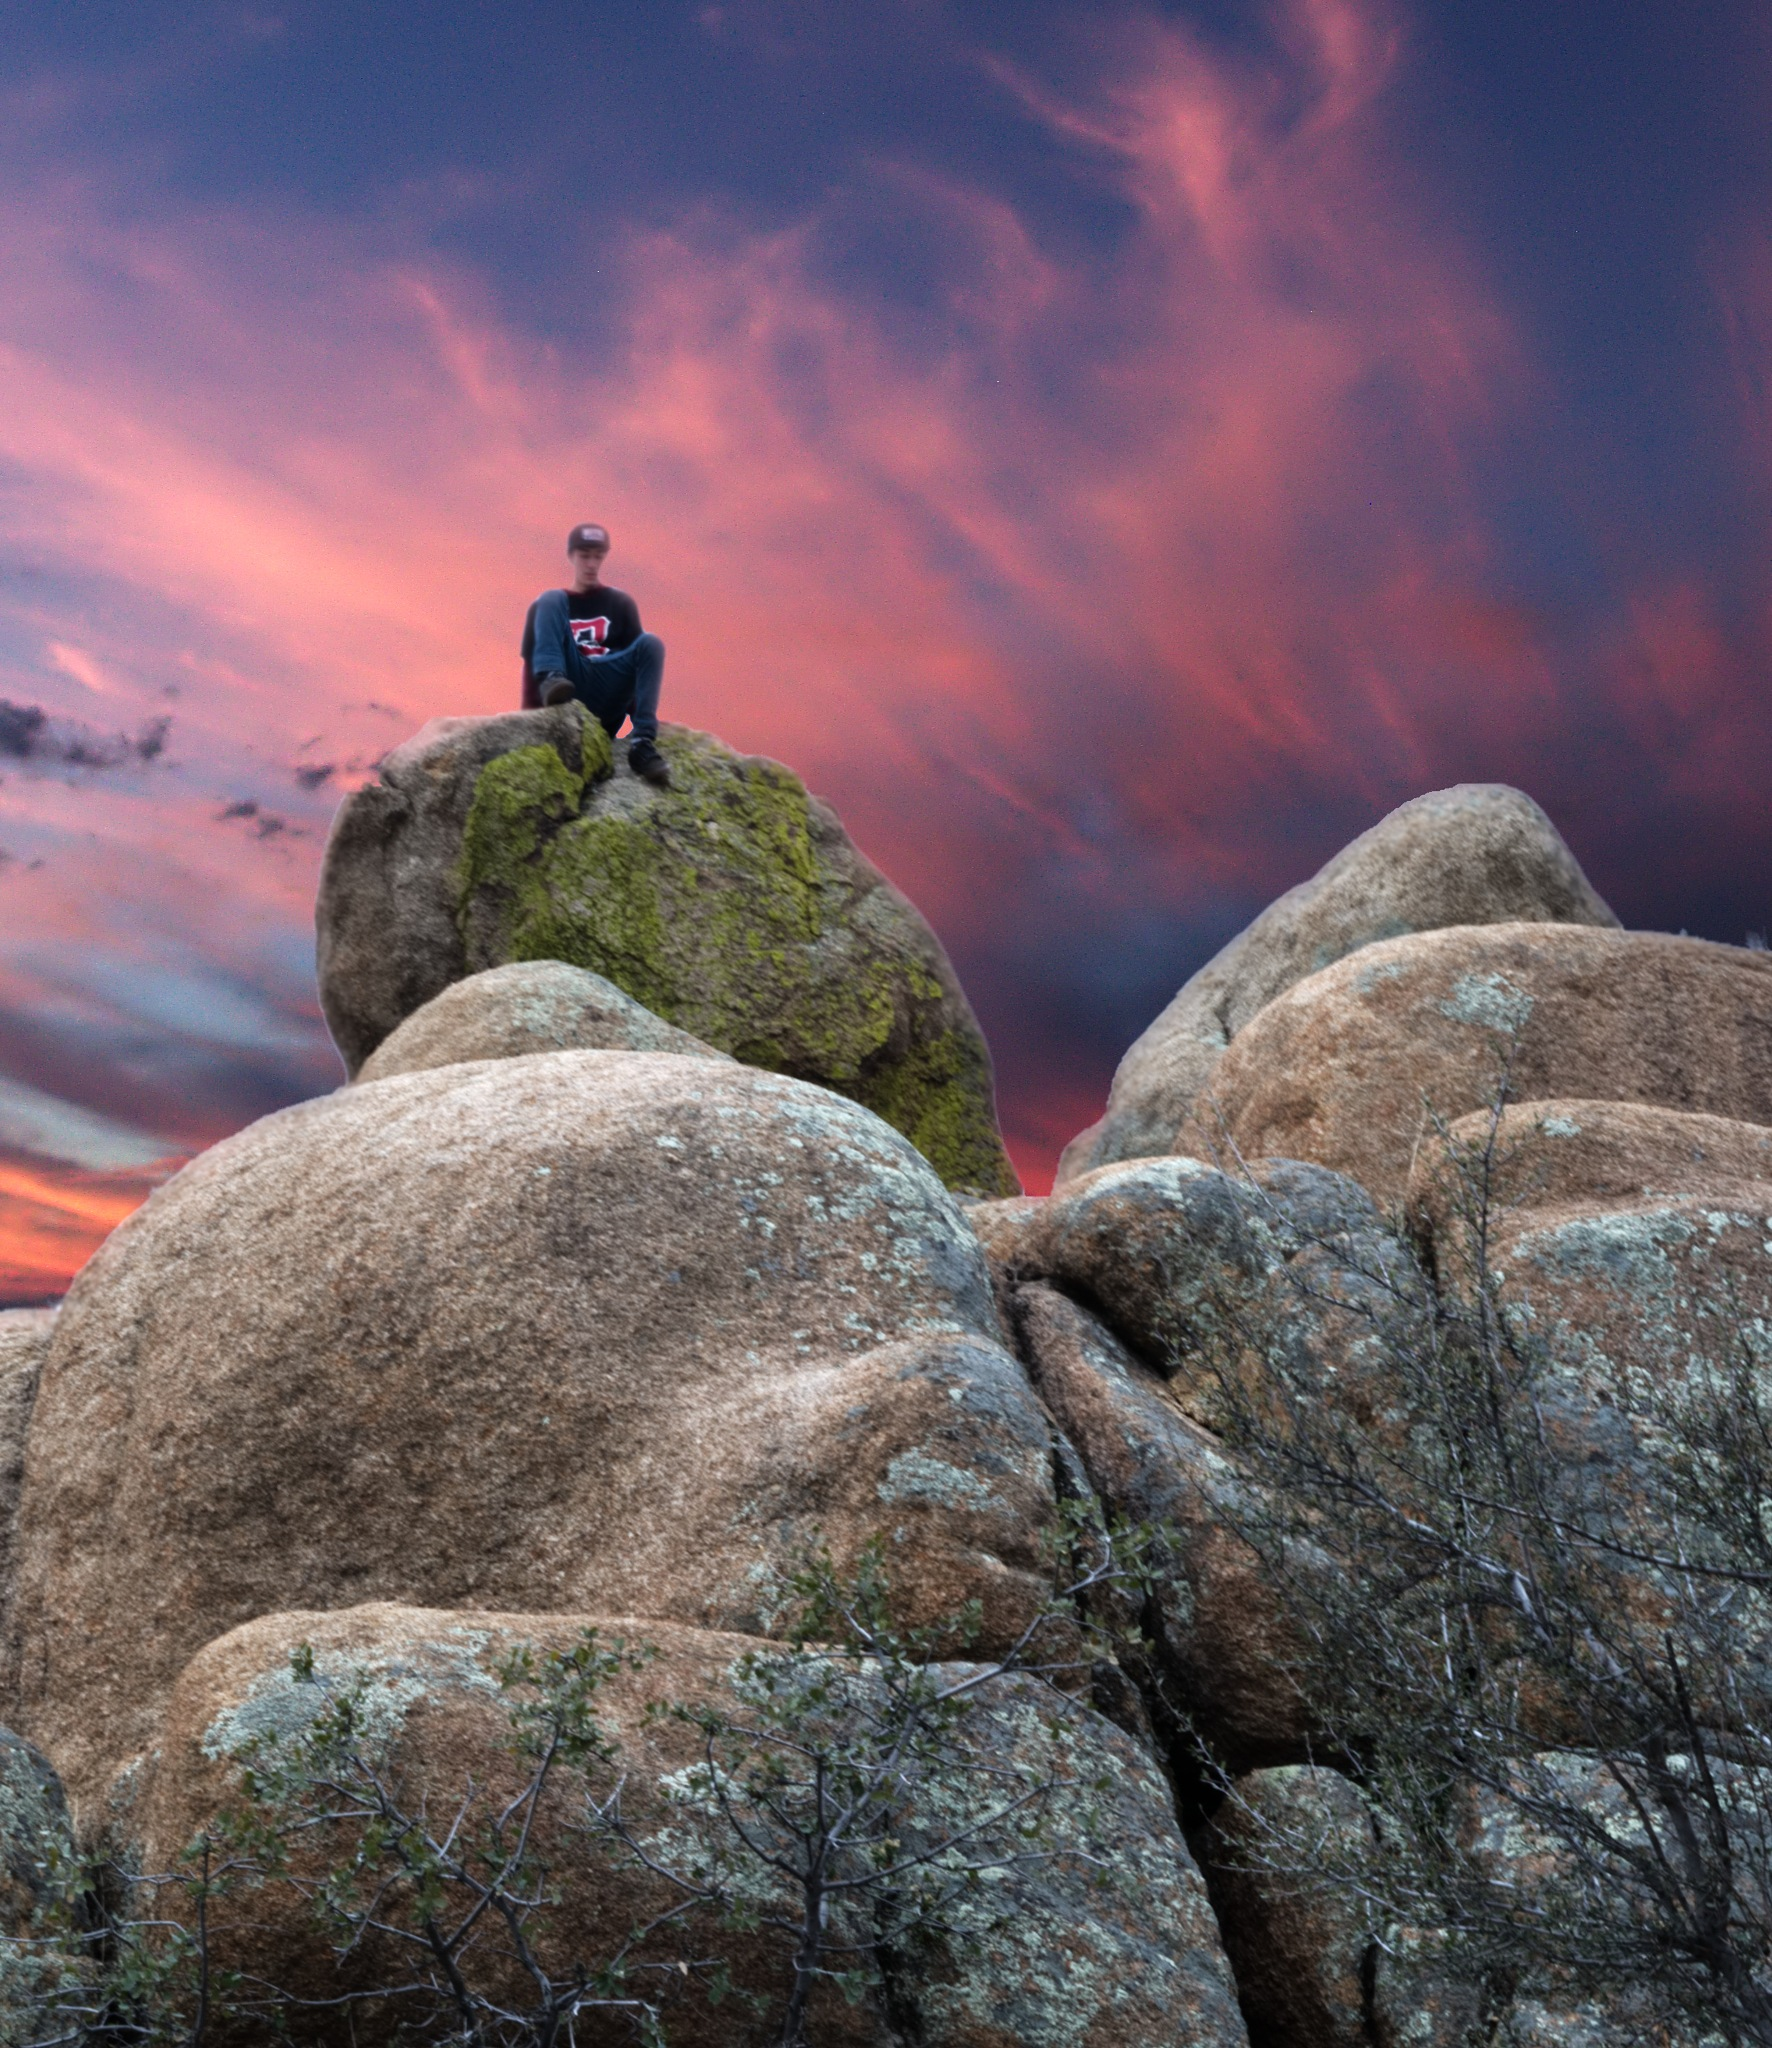 Day after day, alone on a hill by Craig Adamson